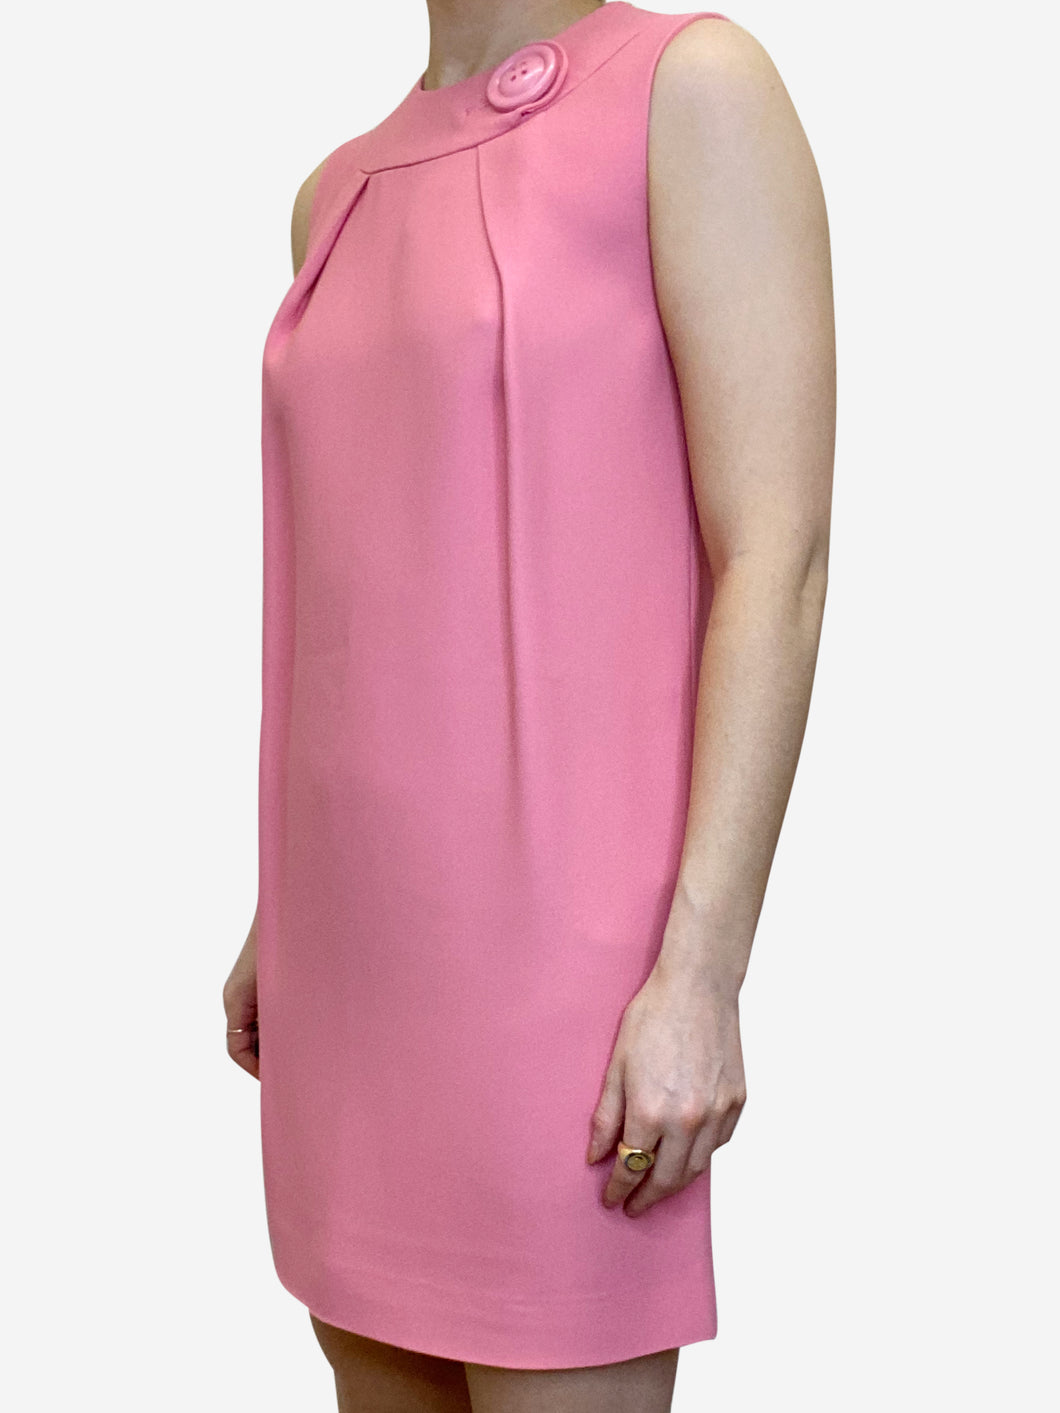 Pink sleeveless shift dress with large button detailing - size IT 38